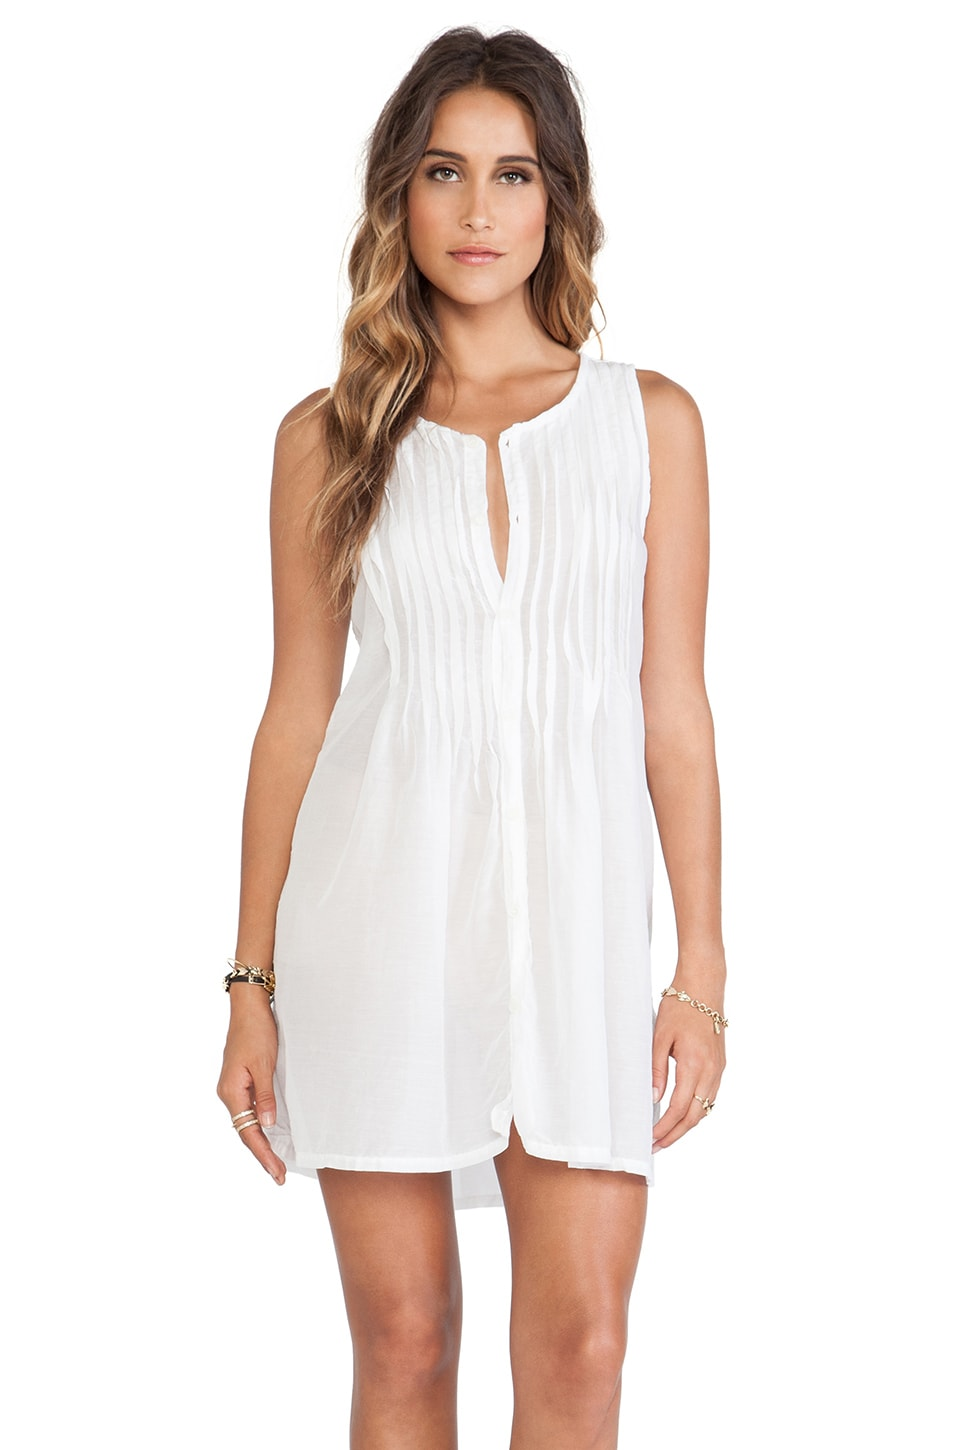 CP SHADES Lindsay Tunic Dress in White